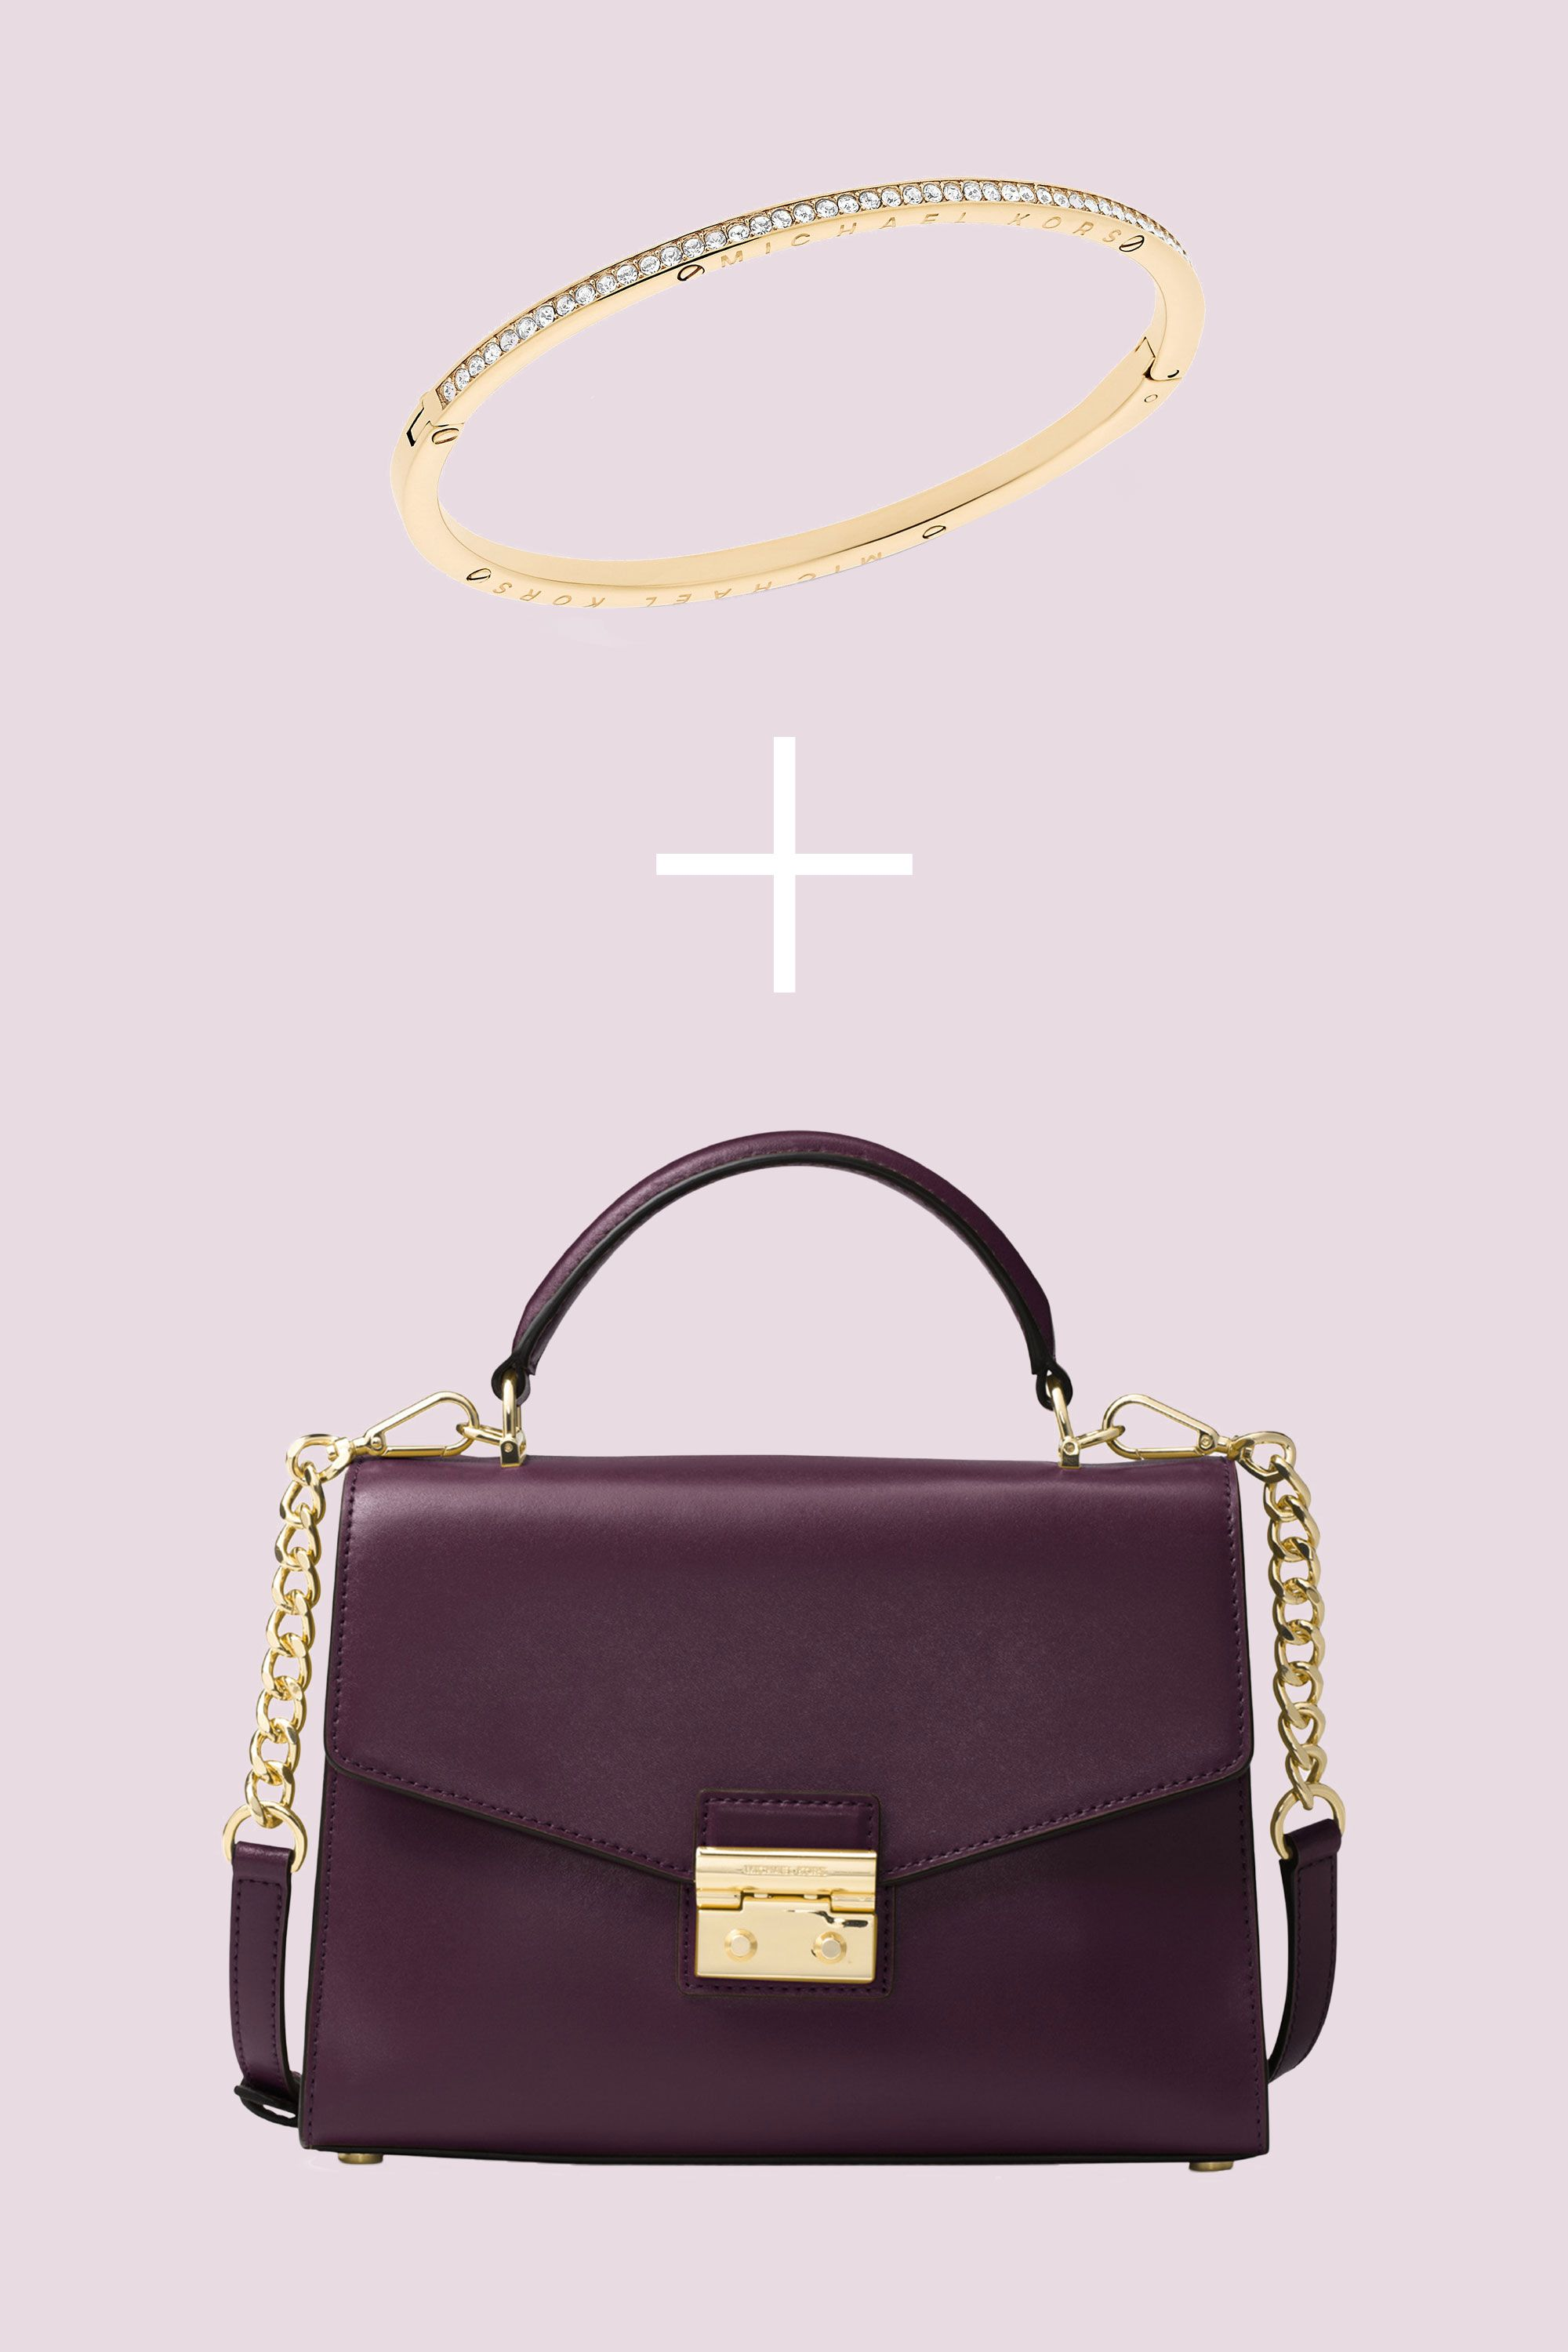 """<p>Trade in your basicbag for a structured satchel in an unexpected merlot hue. When paired with a sleekbangle, the look is sophisticated and elegant—and surprisinglyversatile, too. </p><p><strong data-redactor-tag=""""strong"""" data-verified=""""redactor"""">BUY IT: </strong>Michael Kors bangle, $95; <a href=""""https://www.macys.com/shop/product/michael-kors-pave-hinged-bangle-bracelet?ID=4436262&cm_mmc=carat_dis-_-sep2_nopro_auth_rtw_ffash_tentpole_display_w7080033_11696-_-1339154-_-09052017_10052017"""" target=""""_blank"""" data-tracking-id=""""recirc-text-link"""">macys.com</a>. MICHAEL Michael Kors satchel, $268; <a href=""""https://www.macys.com/shop/product/michael-michael-kors-sloan-medium-top-handle-satchel?ID=4767770&CategoryID=26846&cm_mmc=carat_dis-_-sep2_nopro_auth_rtw_ffash_tentpole_display_w7080033_11696-_-1339154-_-09052017_10052017"""" target=""""_blank"""" data-tracking-id=""""recirc-text-link"""">macys.com</a><br></p>"""